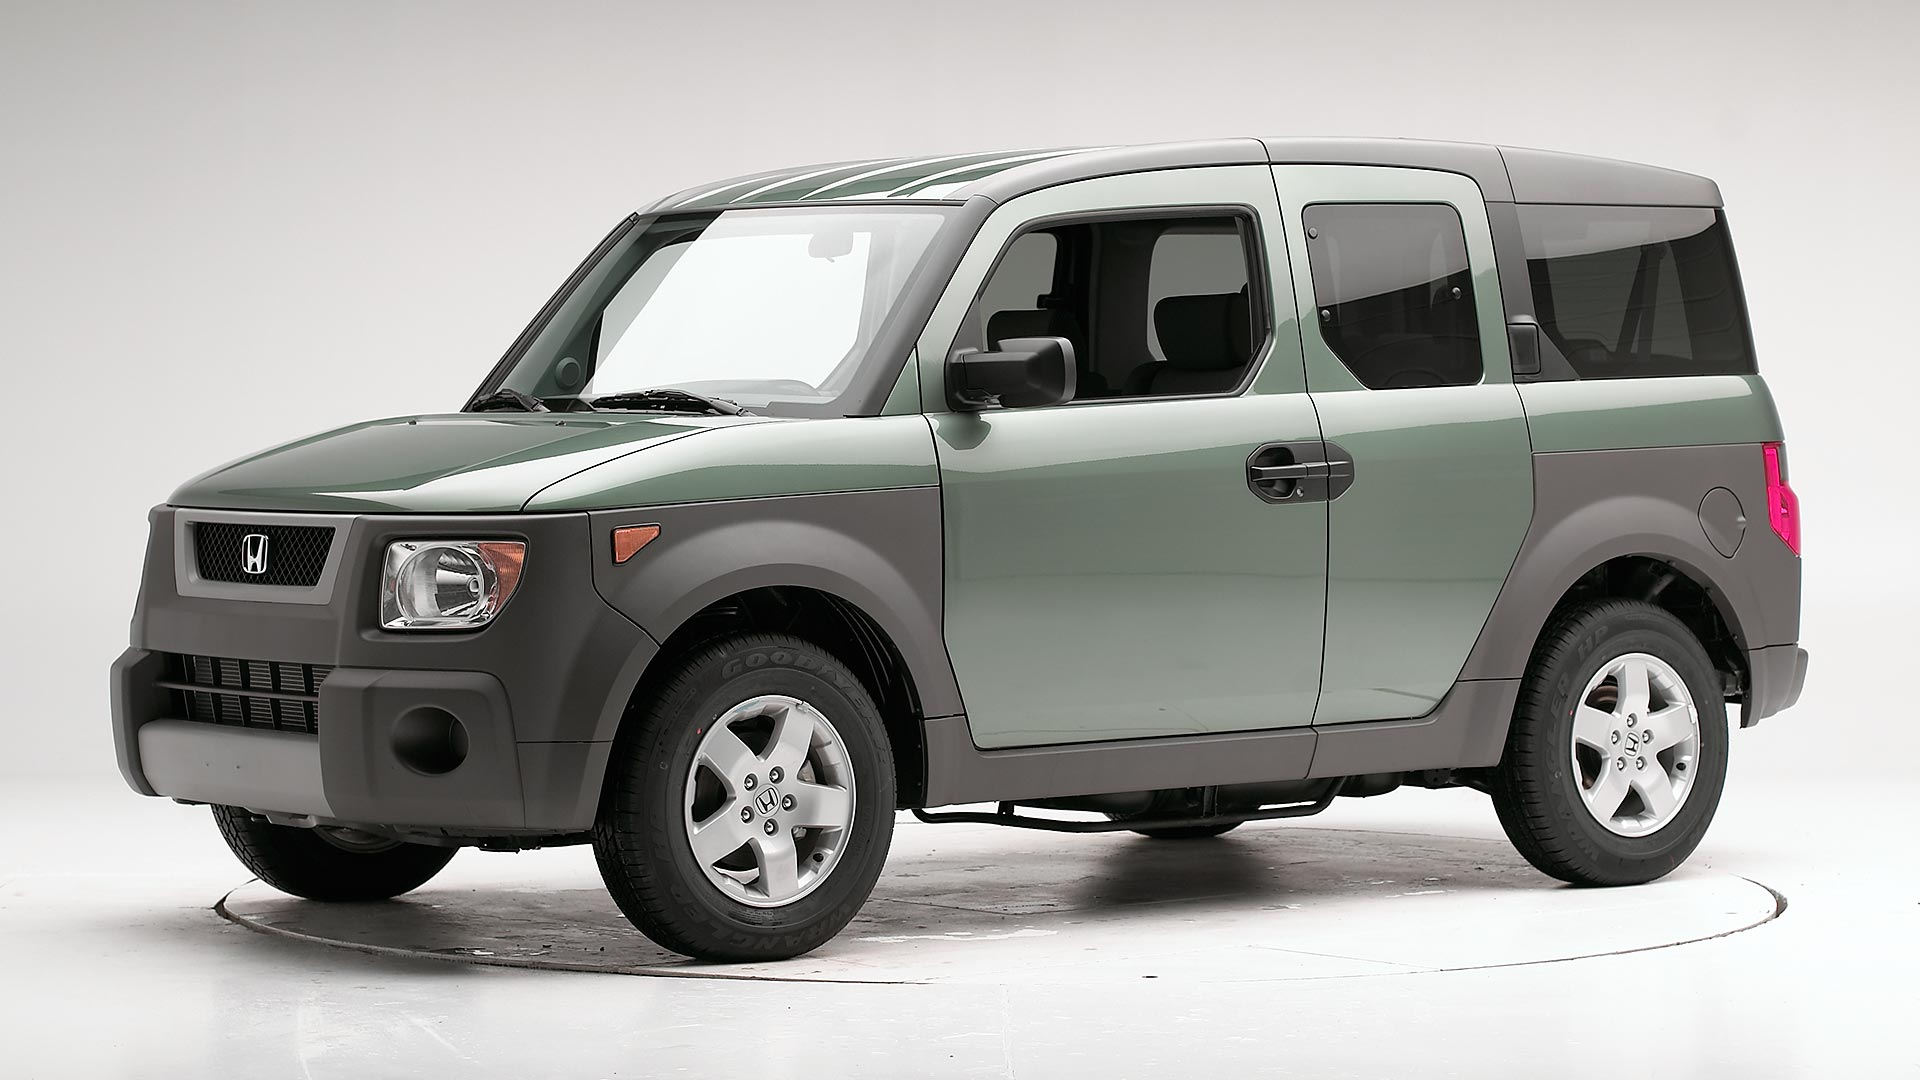 2003 Honda Element 4-door SUV